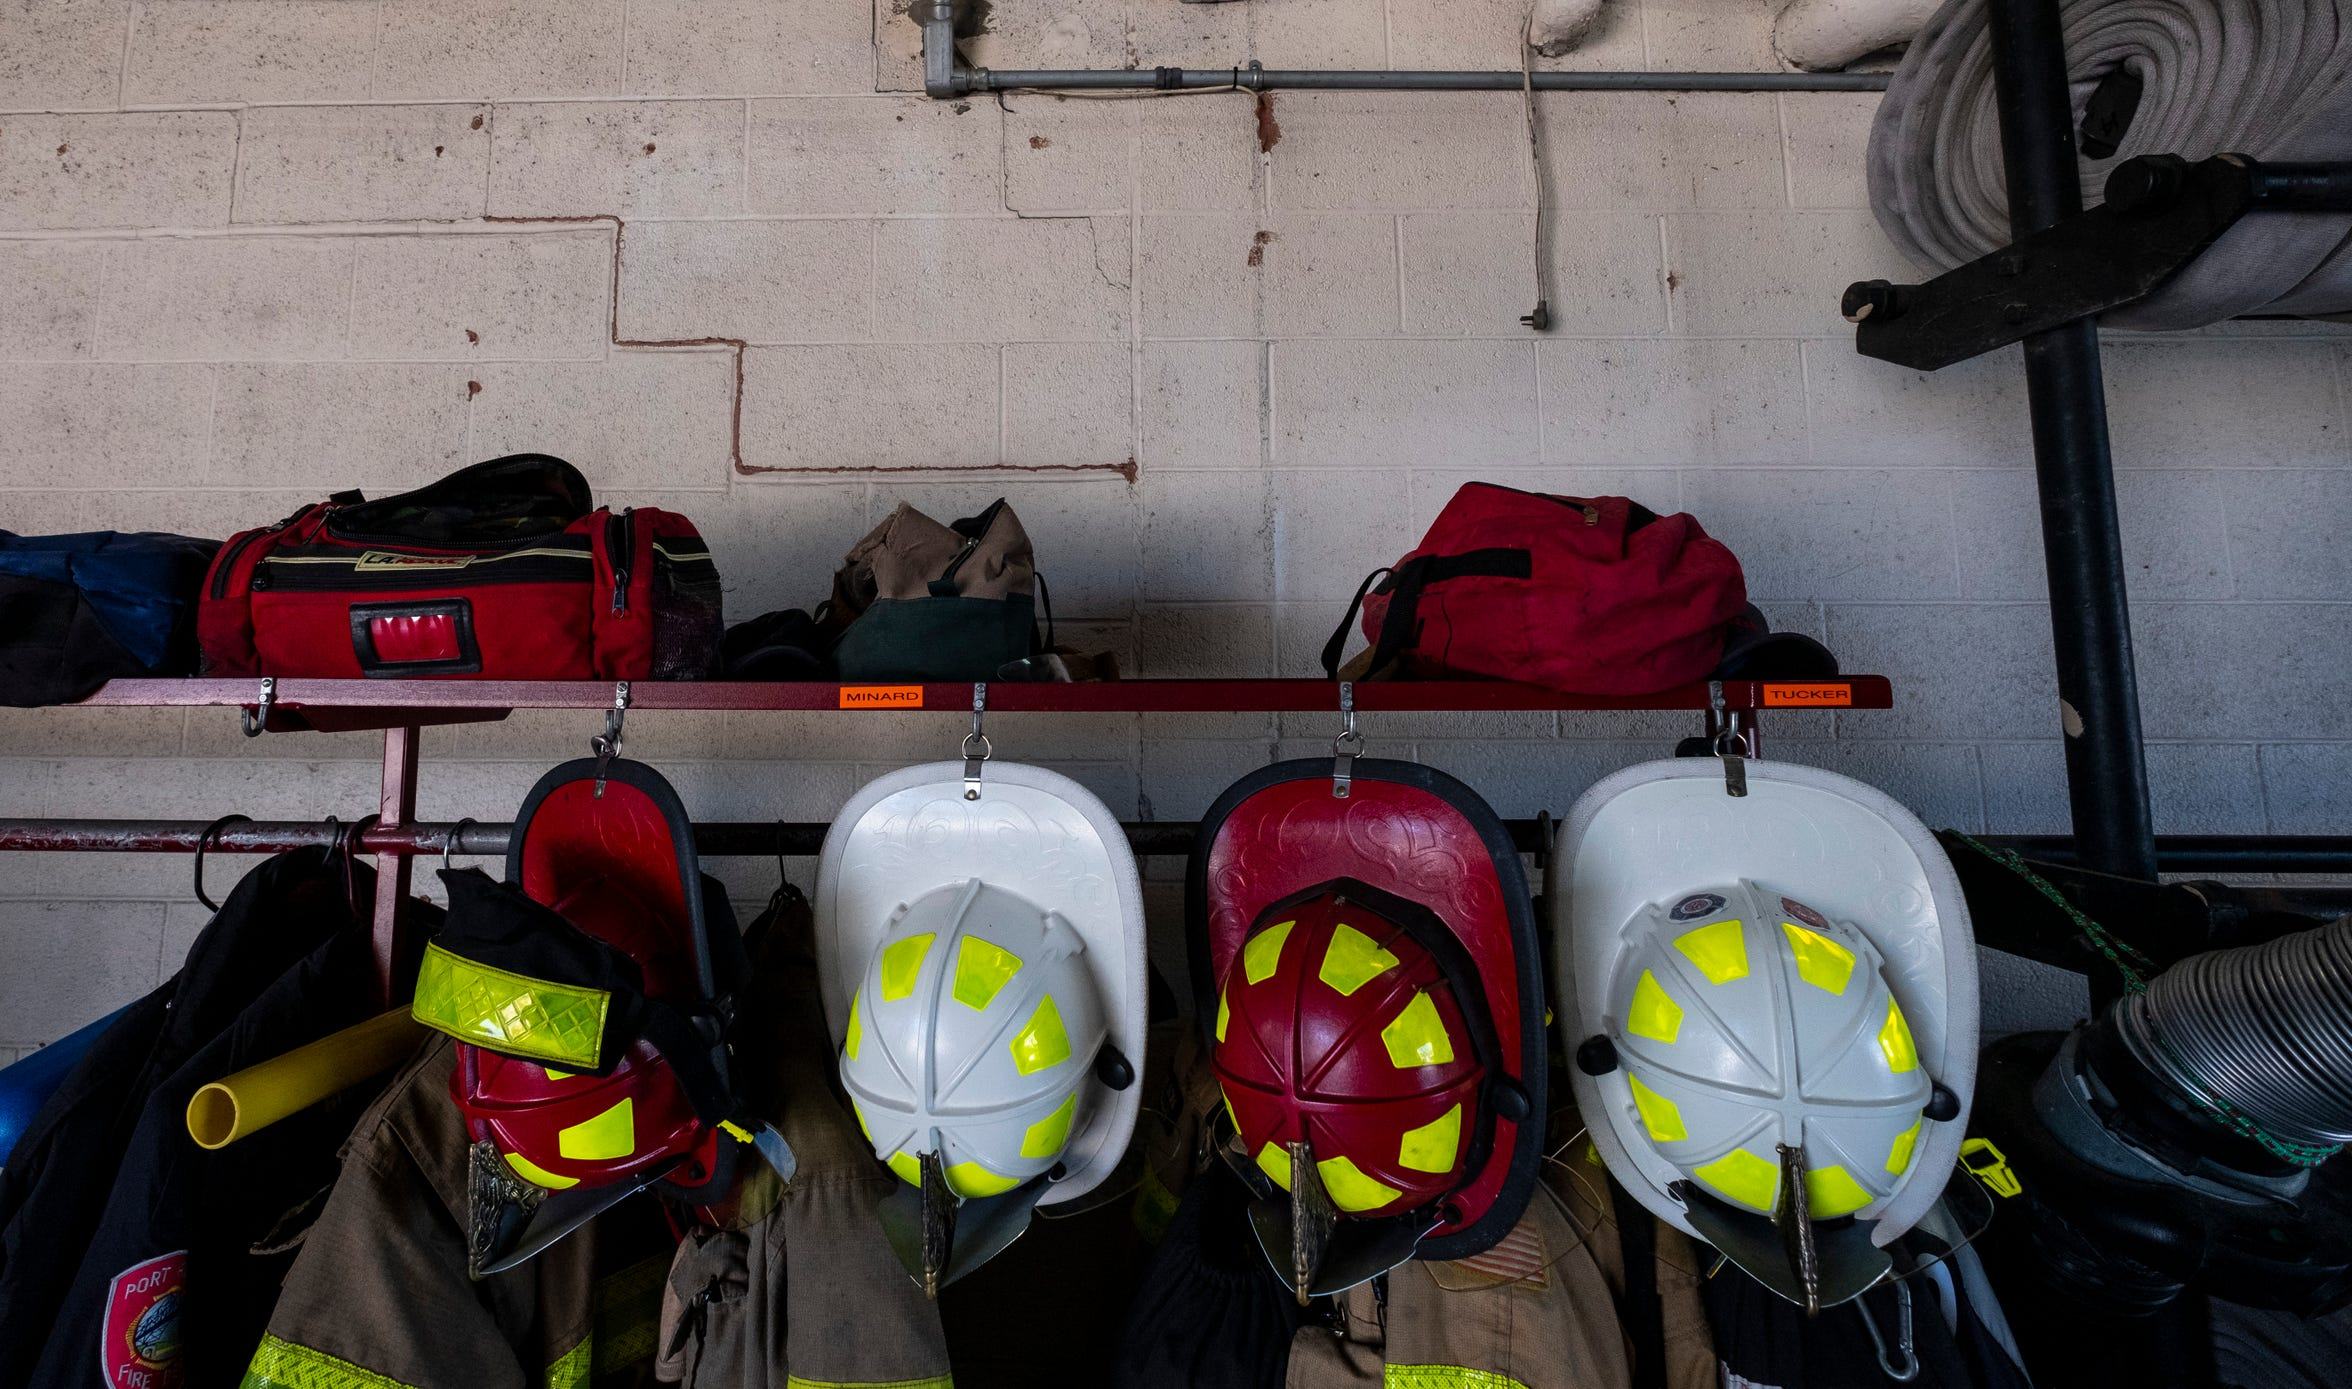 Cracks can be found in the brick walls throughout Port Huron Fire's Central Station.